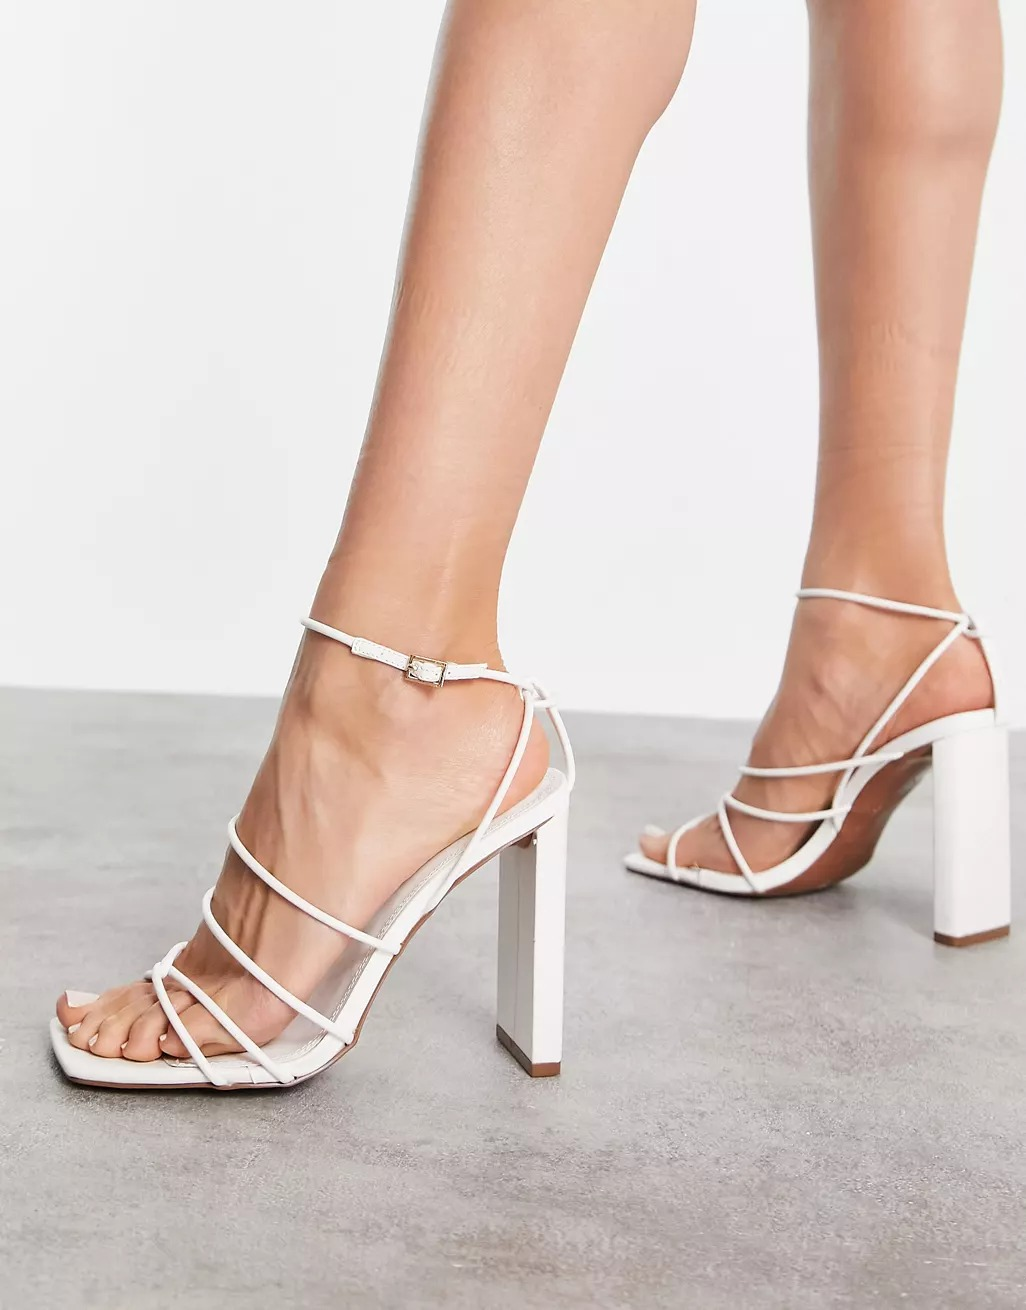 white strappy sandal heels wedding shoes from ASOS